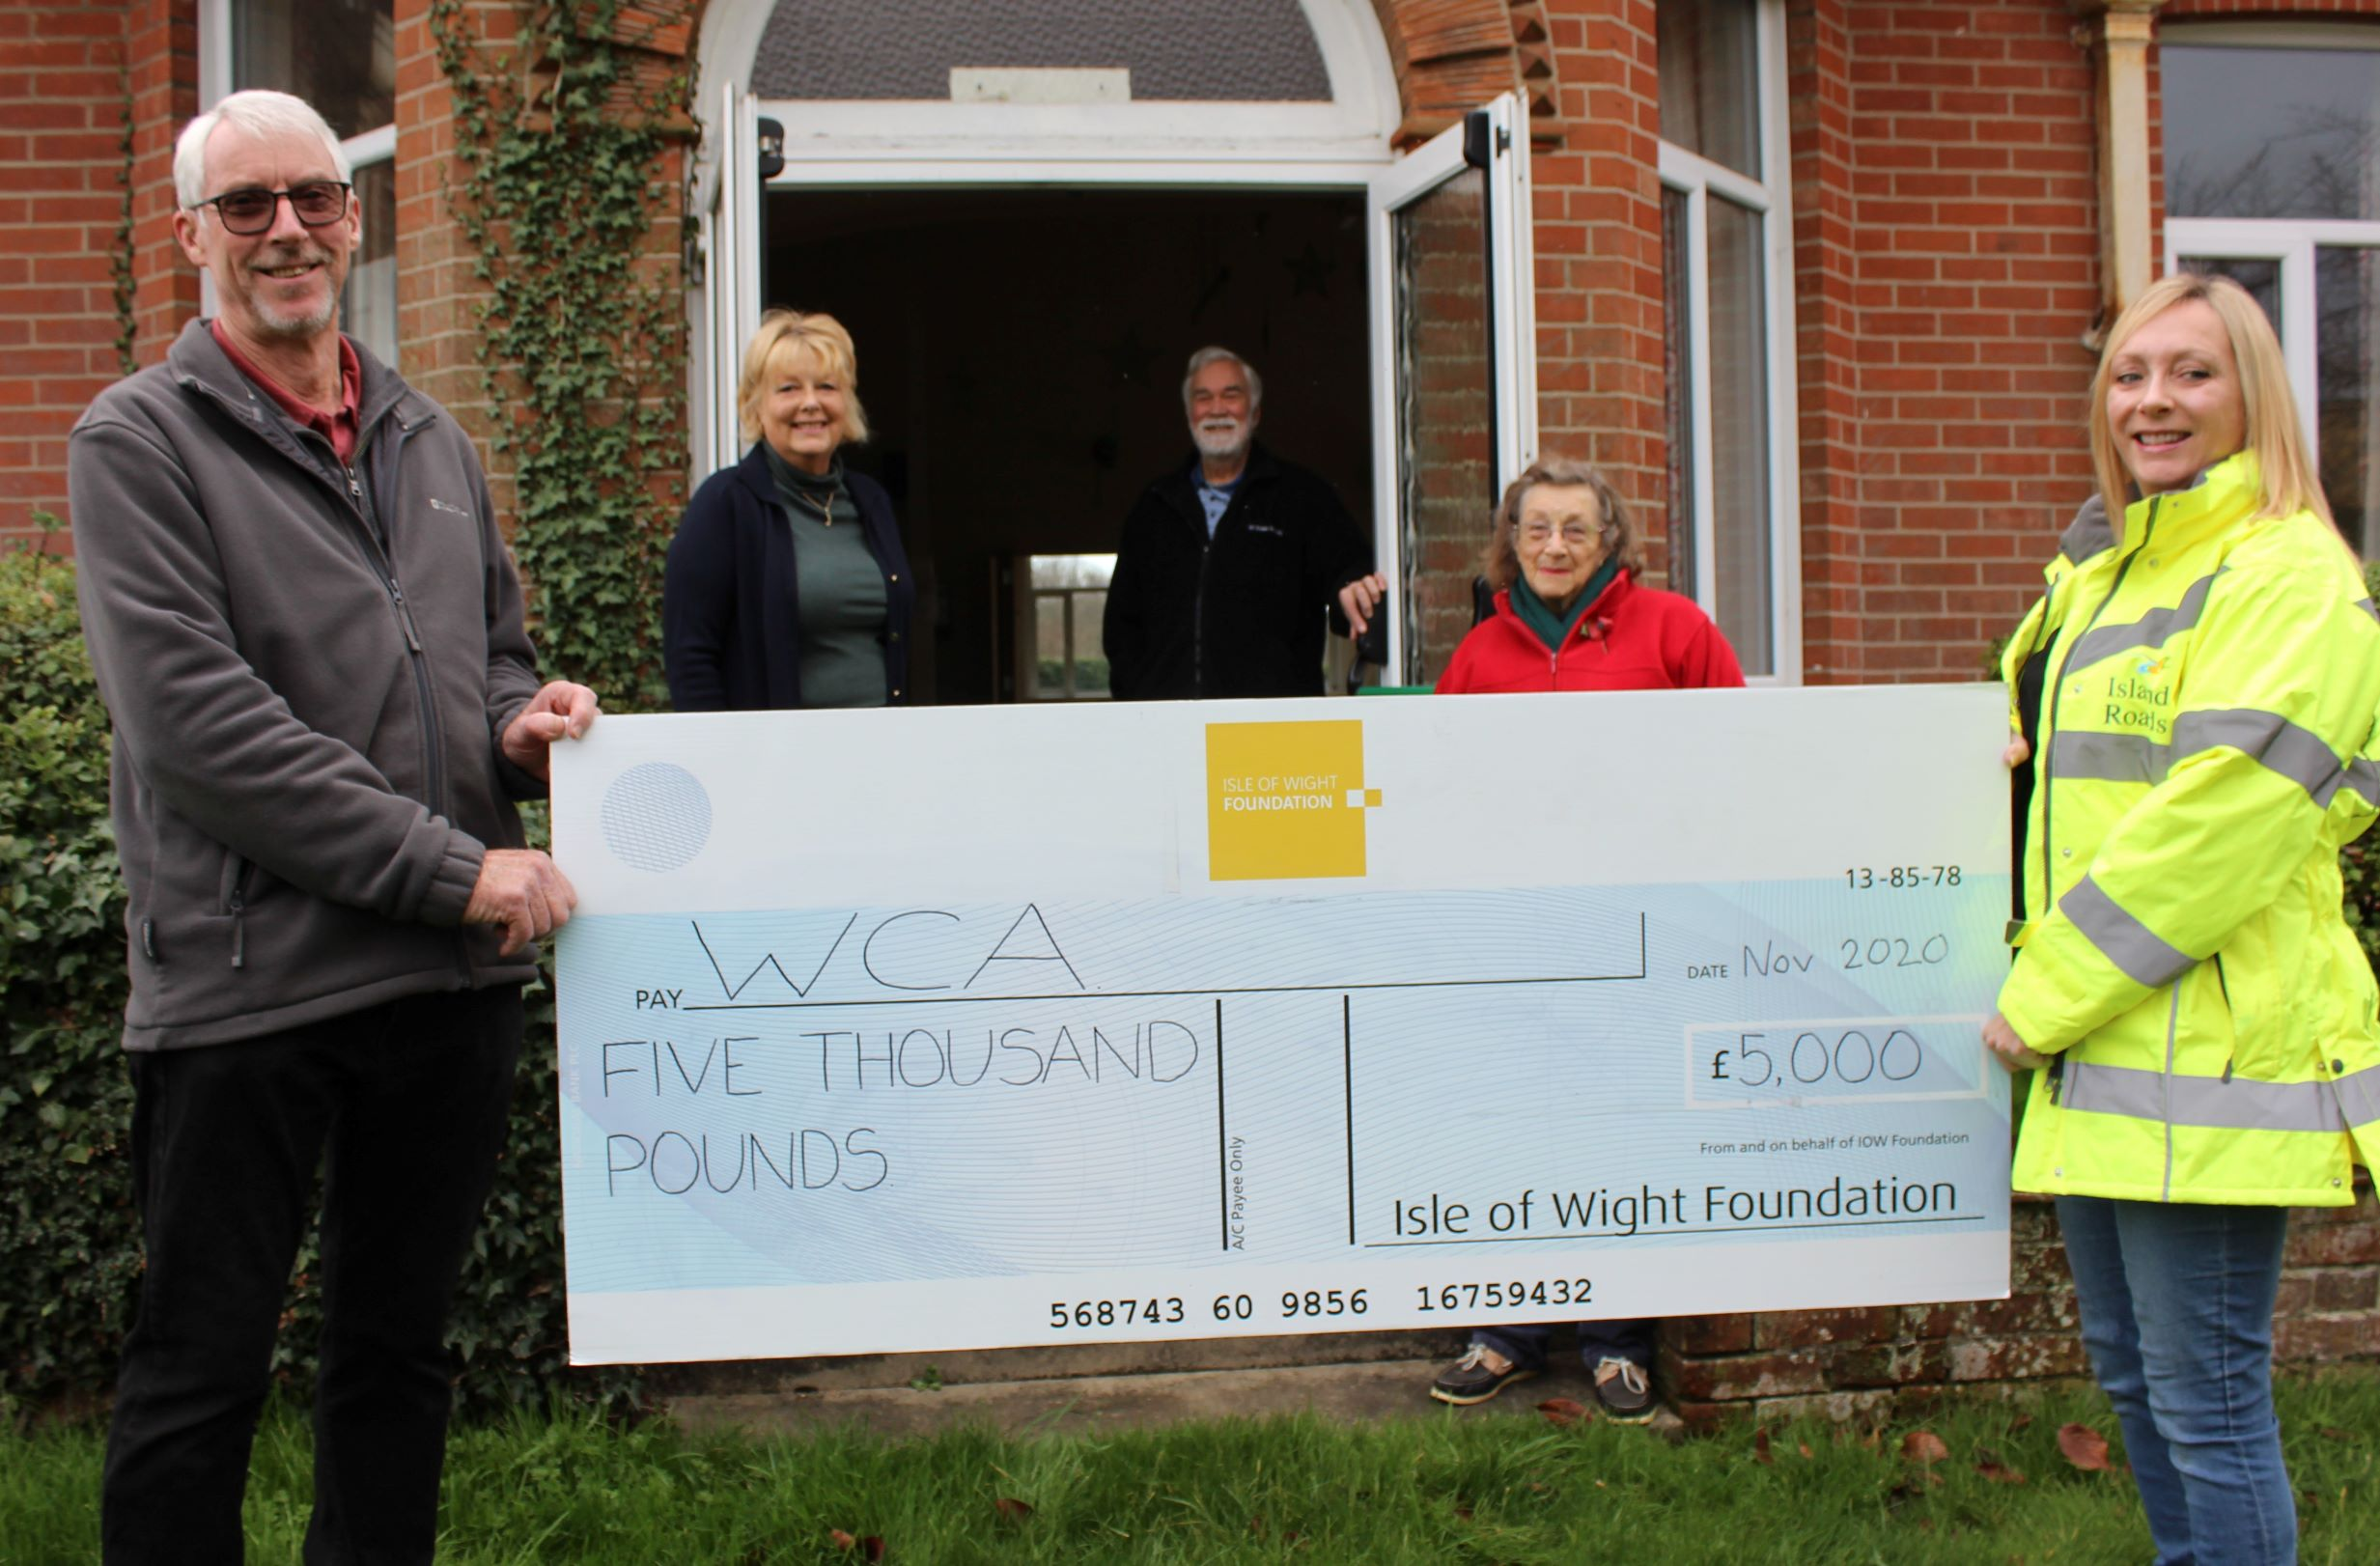 Photo showing Island Roads employee and members of the Whippingham Community Association holding a large cheque from the Isle of Wight Foundation